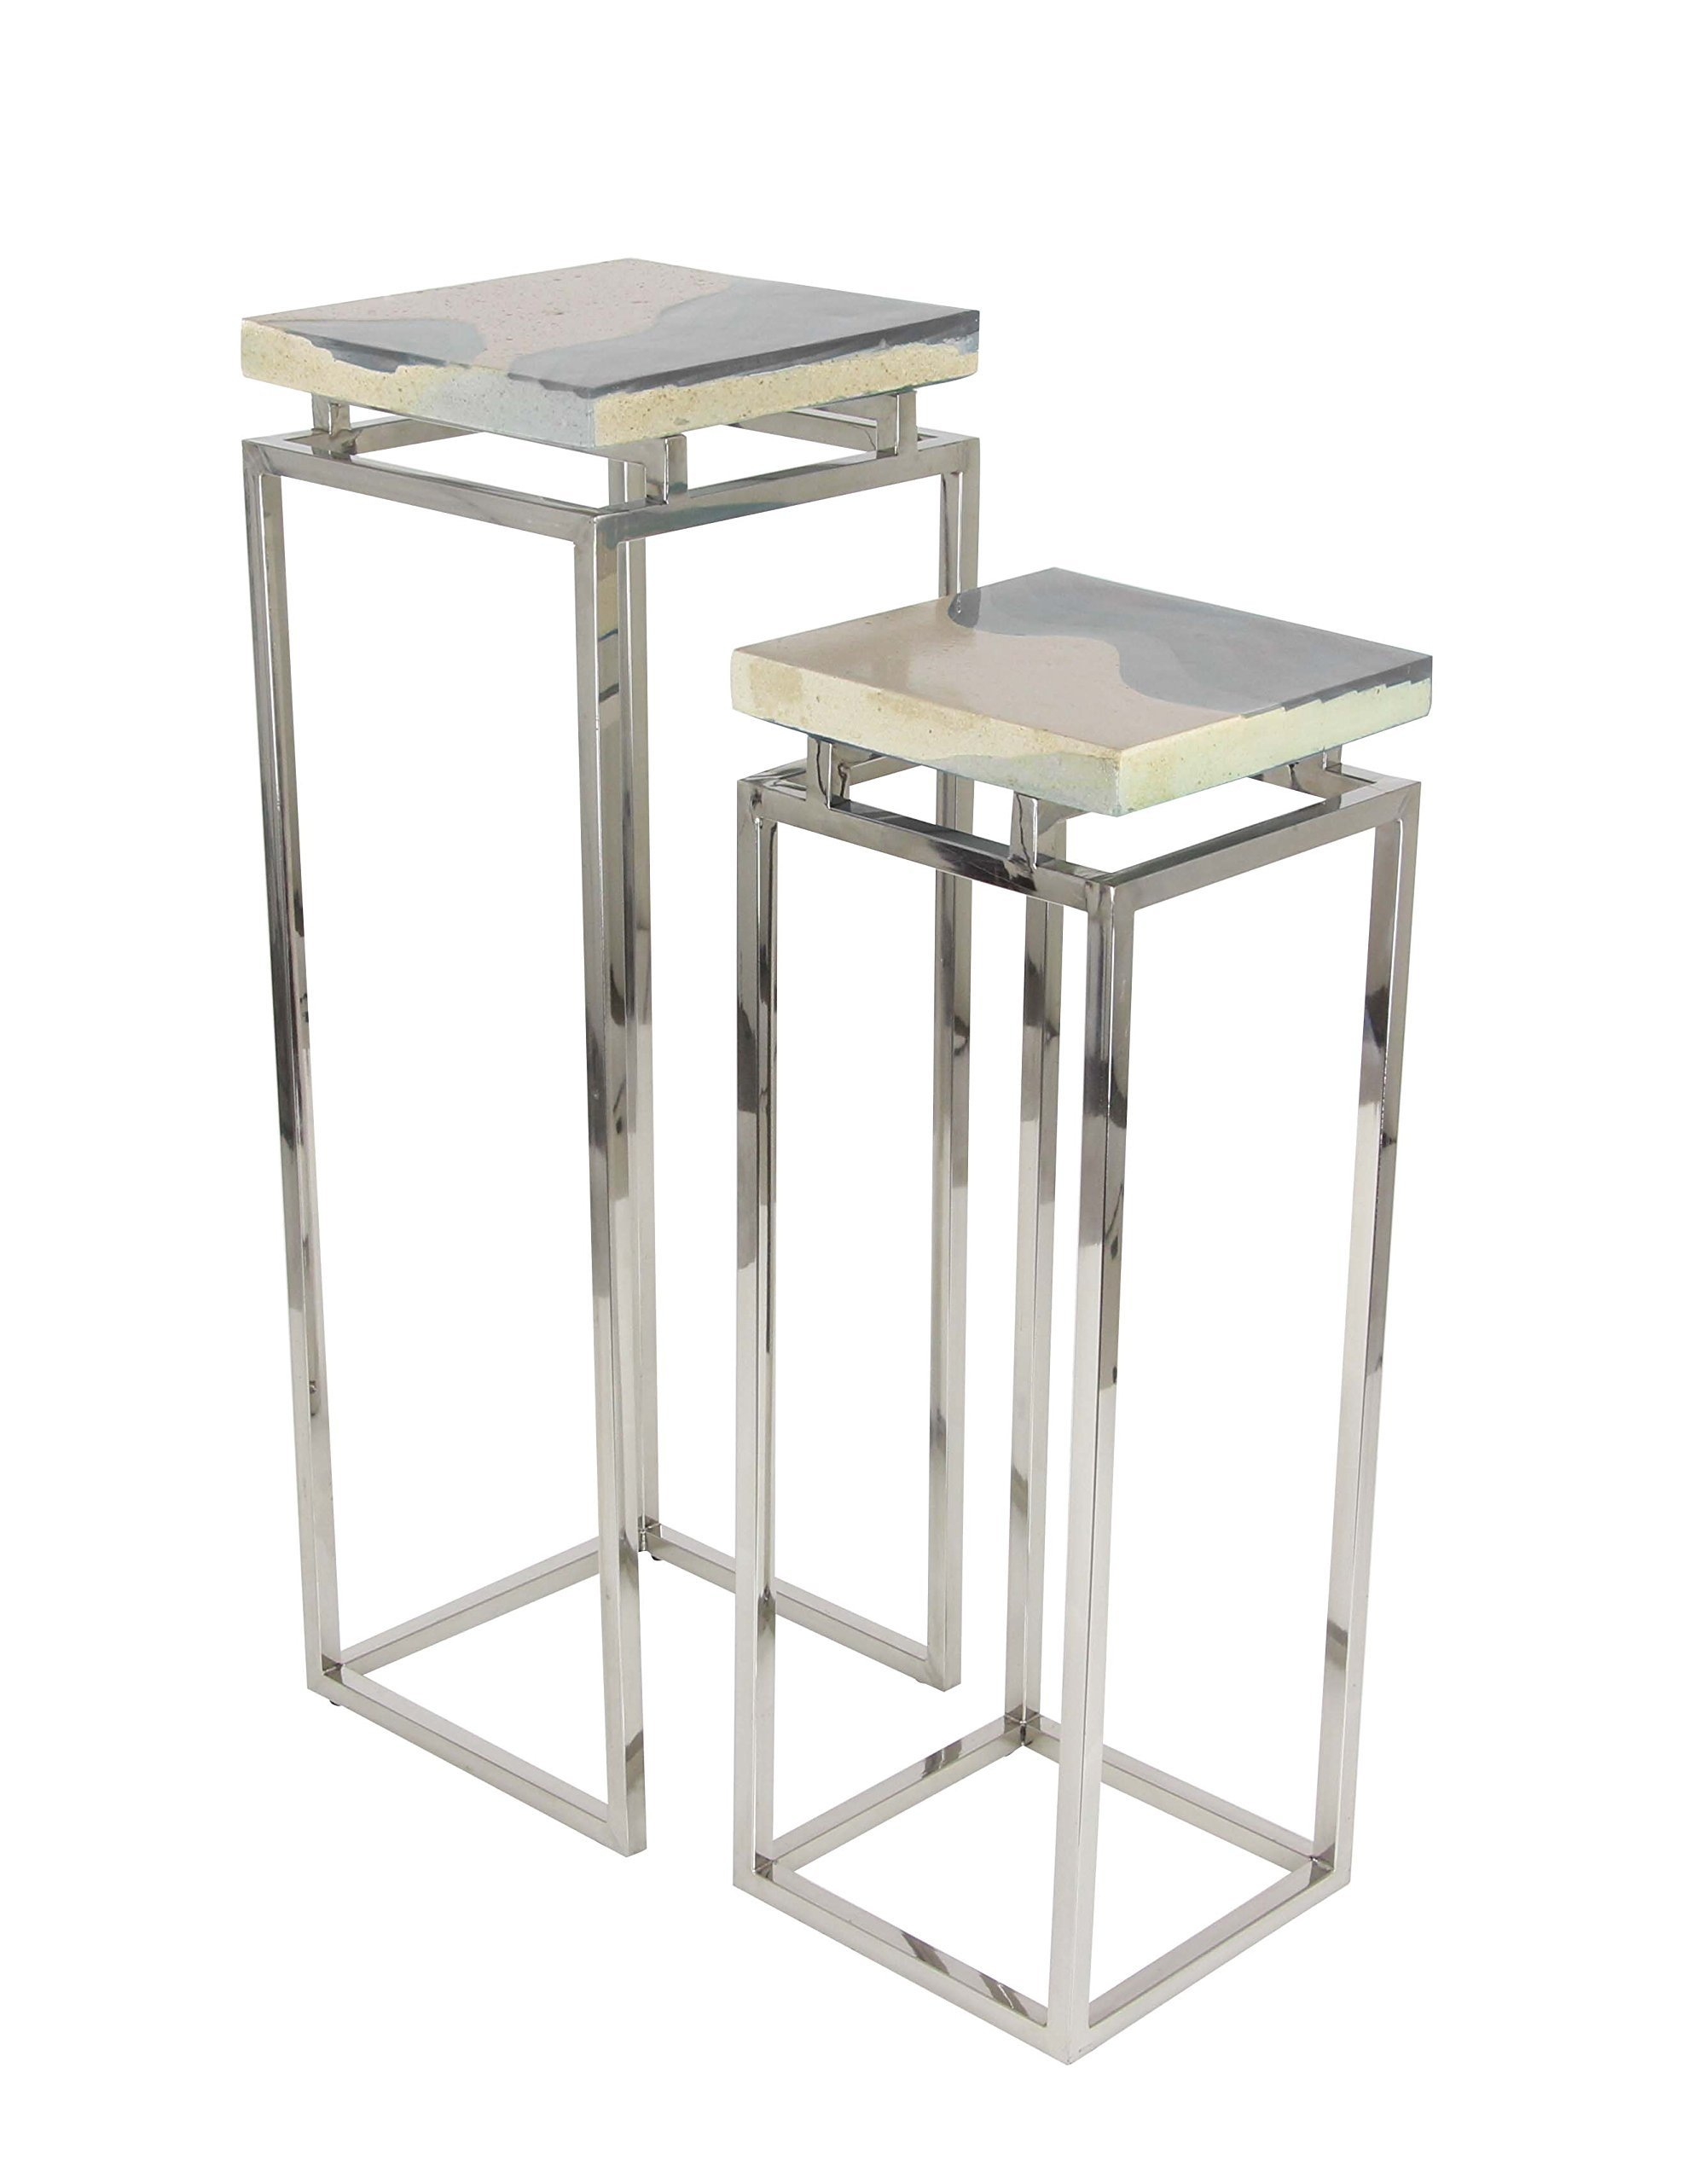 Deco 79 Stainless Steel and Stone Pedestal, Brown/Silver by Deco 79